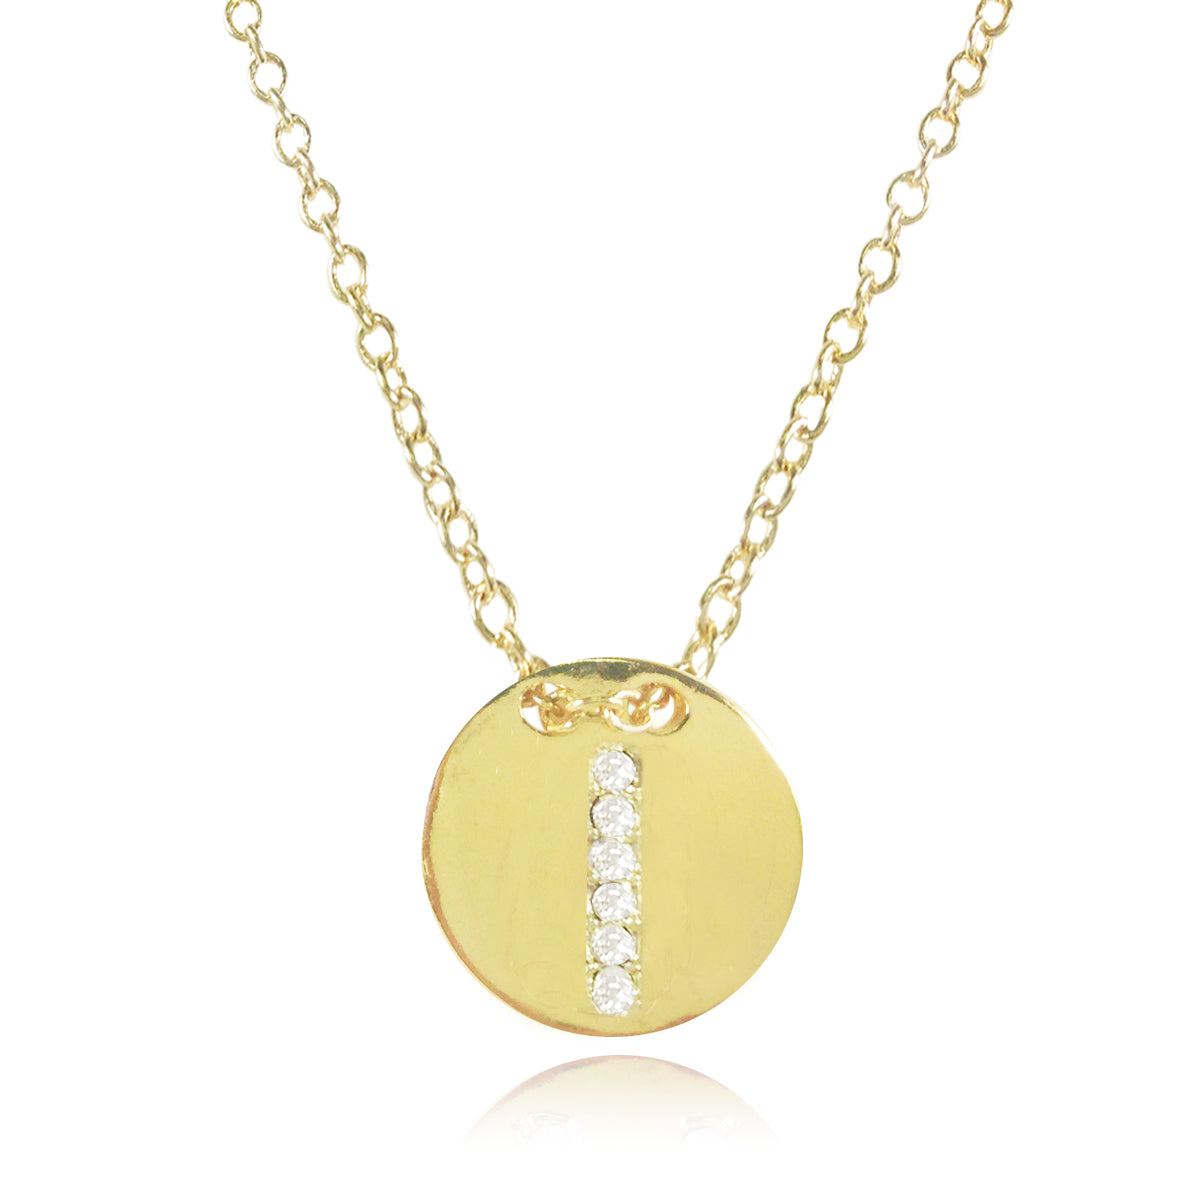 Gold Plated Initial Letter Pendant Necklace